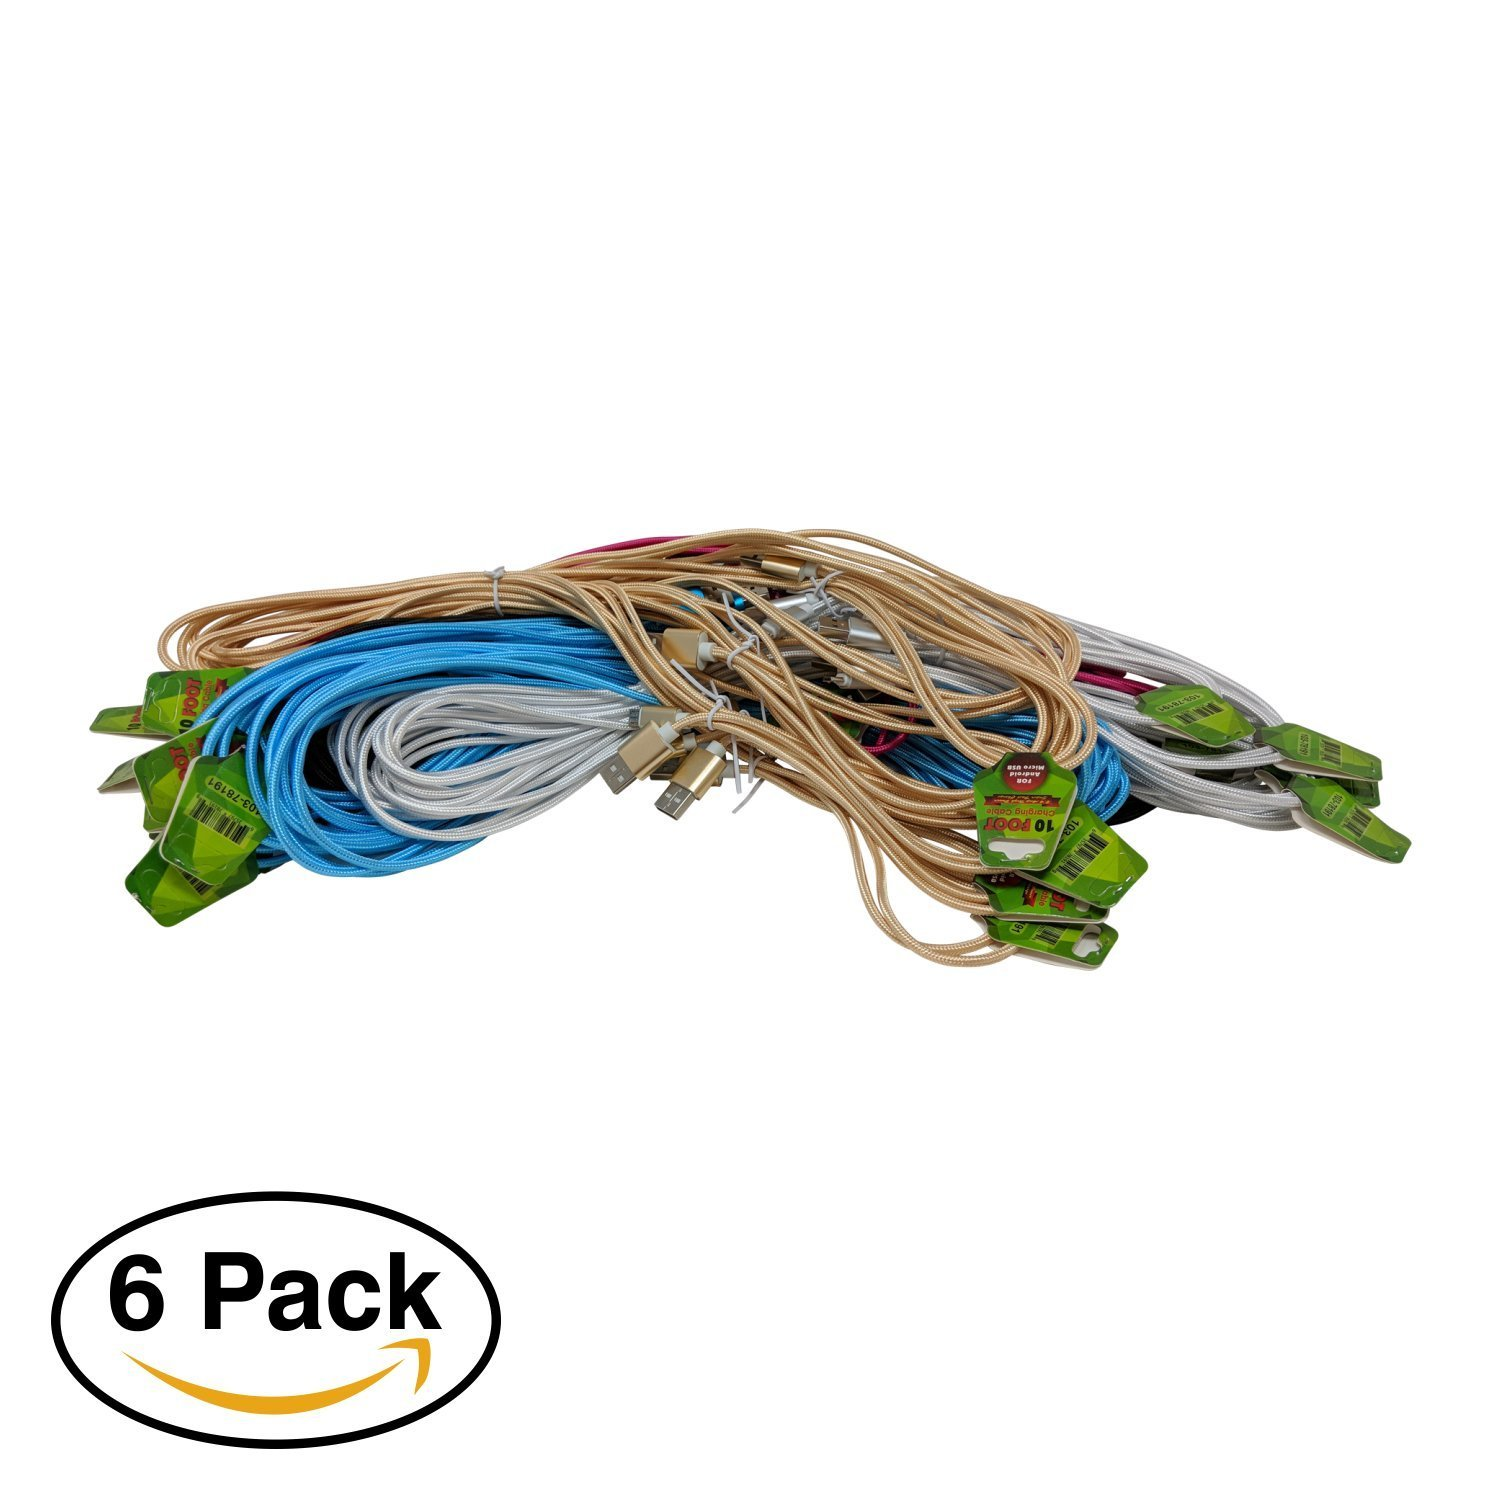 DSD 10ft Assorted Colors Micro USB C Charging Cable Cord - Portable Long Fast Charging Cable Compatible for Android and Windows smartphones, Tablet Devices (6 Pack)